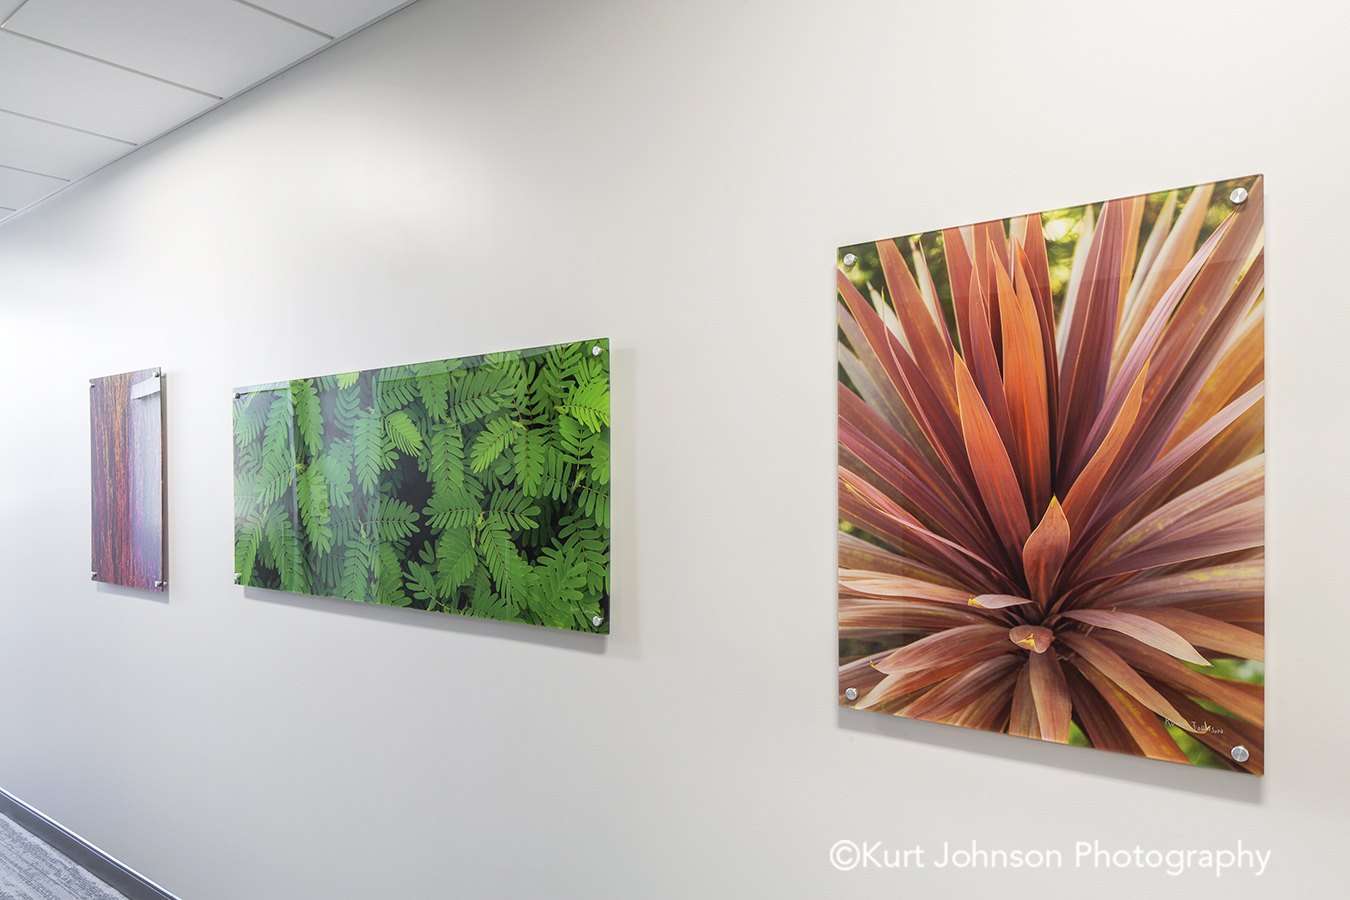 acrylic panel install healthcare installation CHI St Saint Francis Grand Island Nebraska clinic cancer treatment hallway corridor leaves botanical